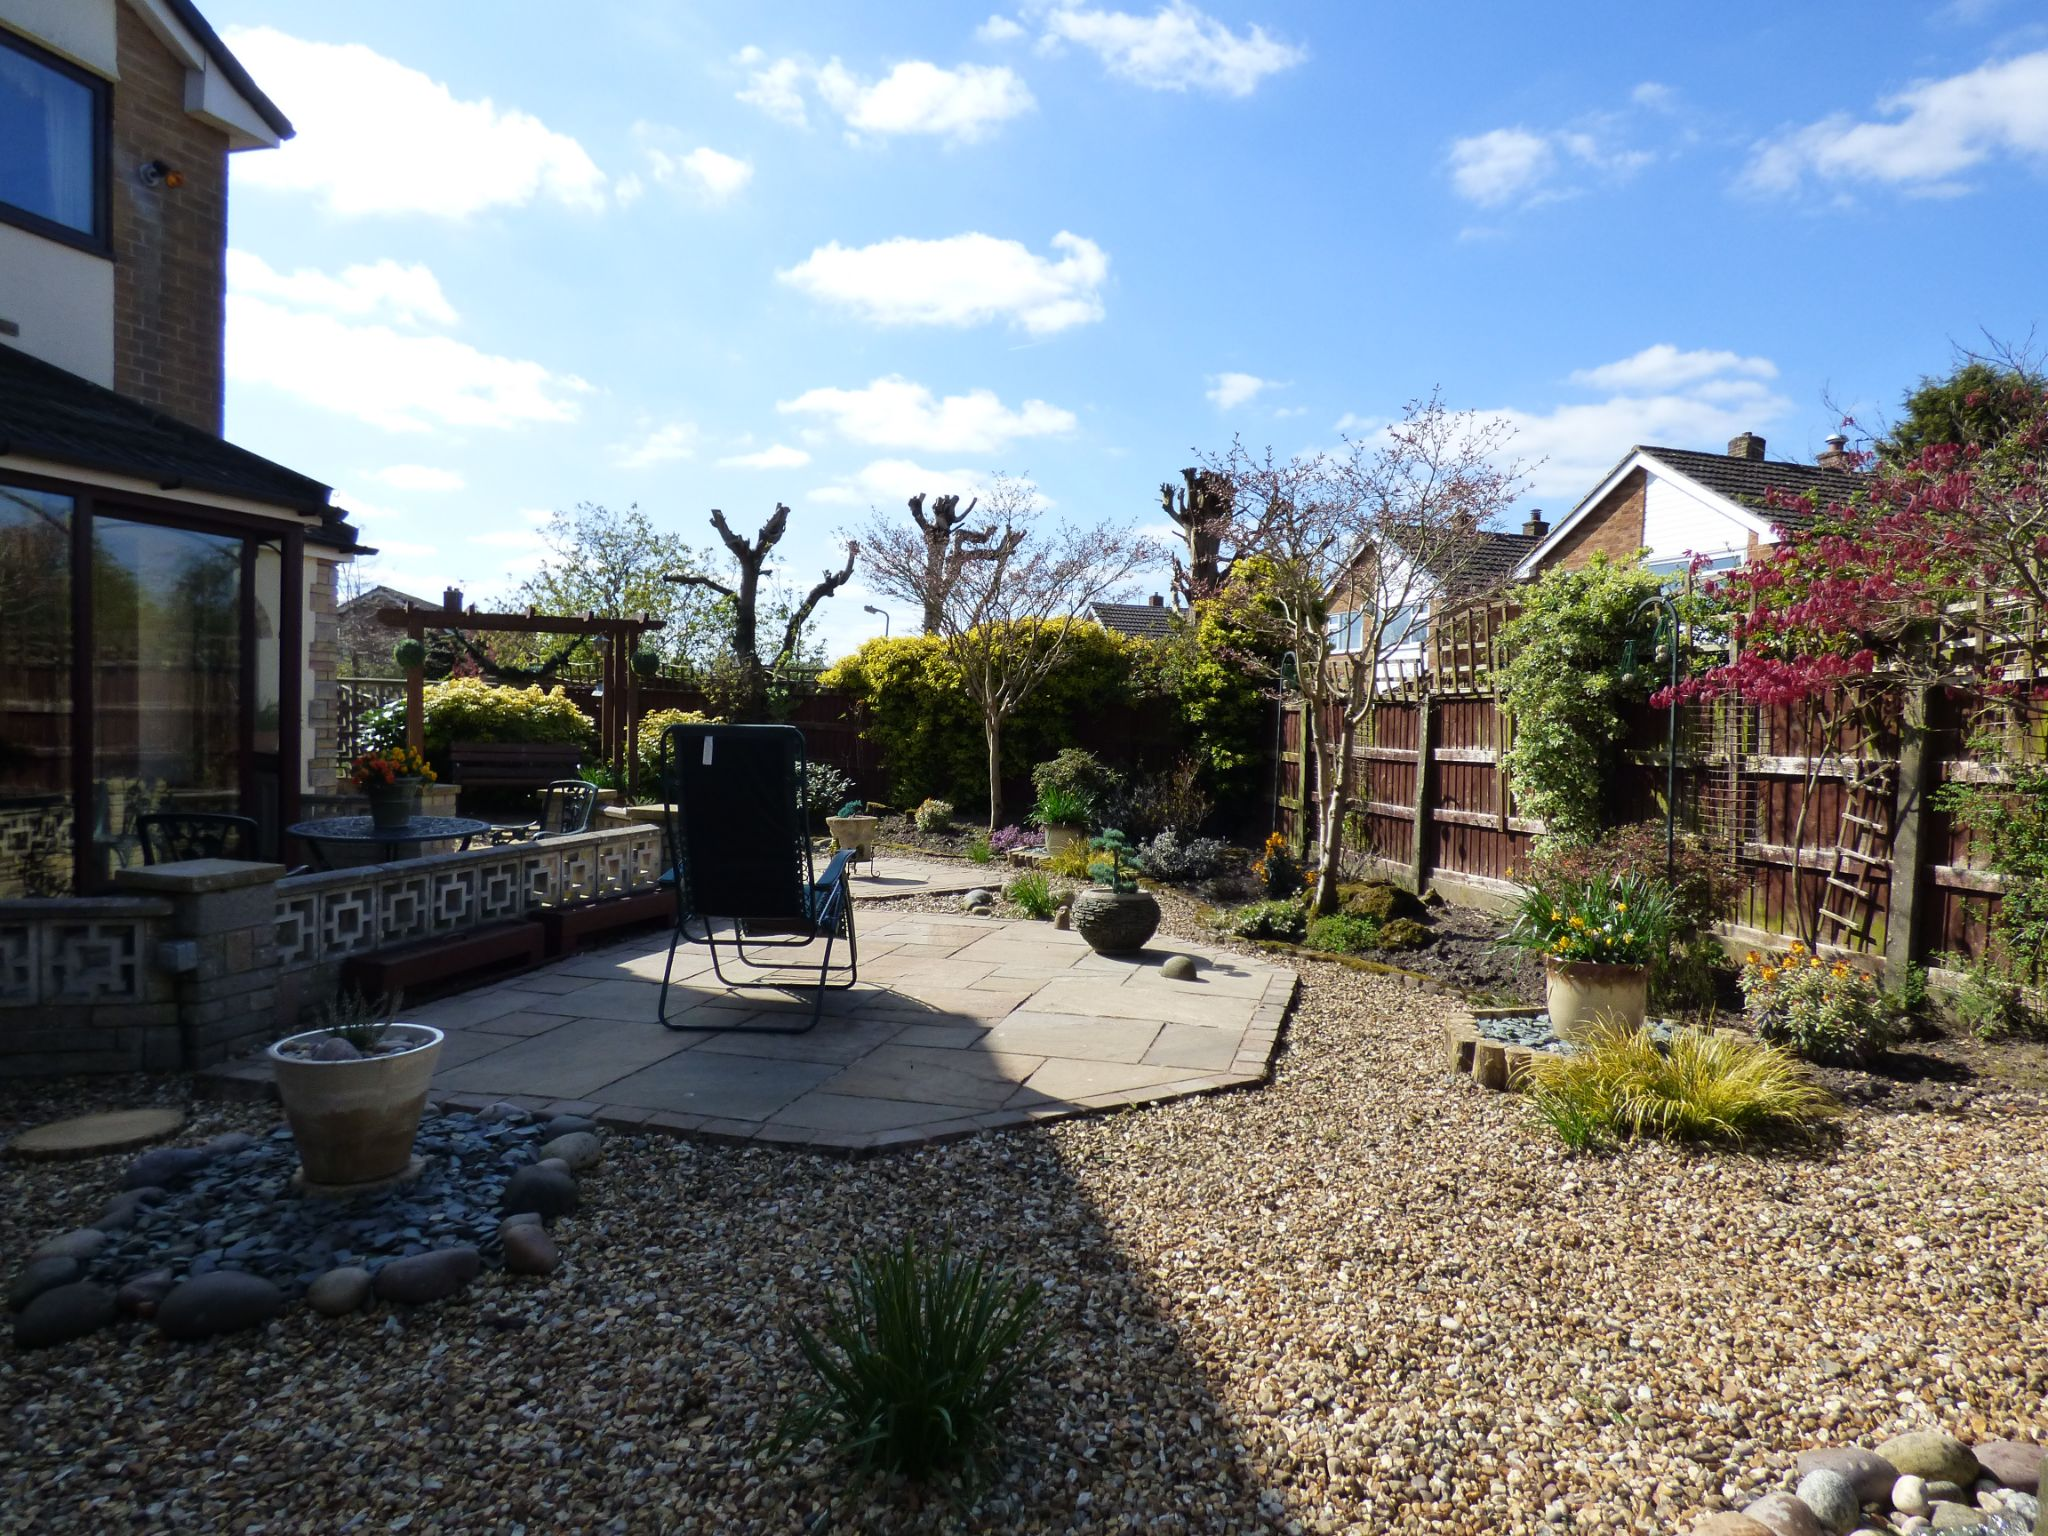 3 Bedroom Detached House For Sale - Rear Garden View 3